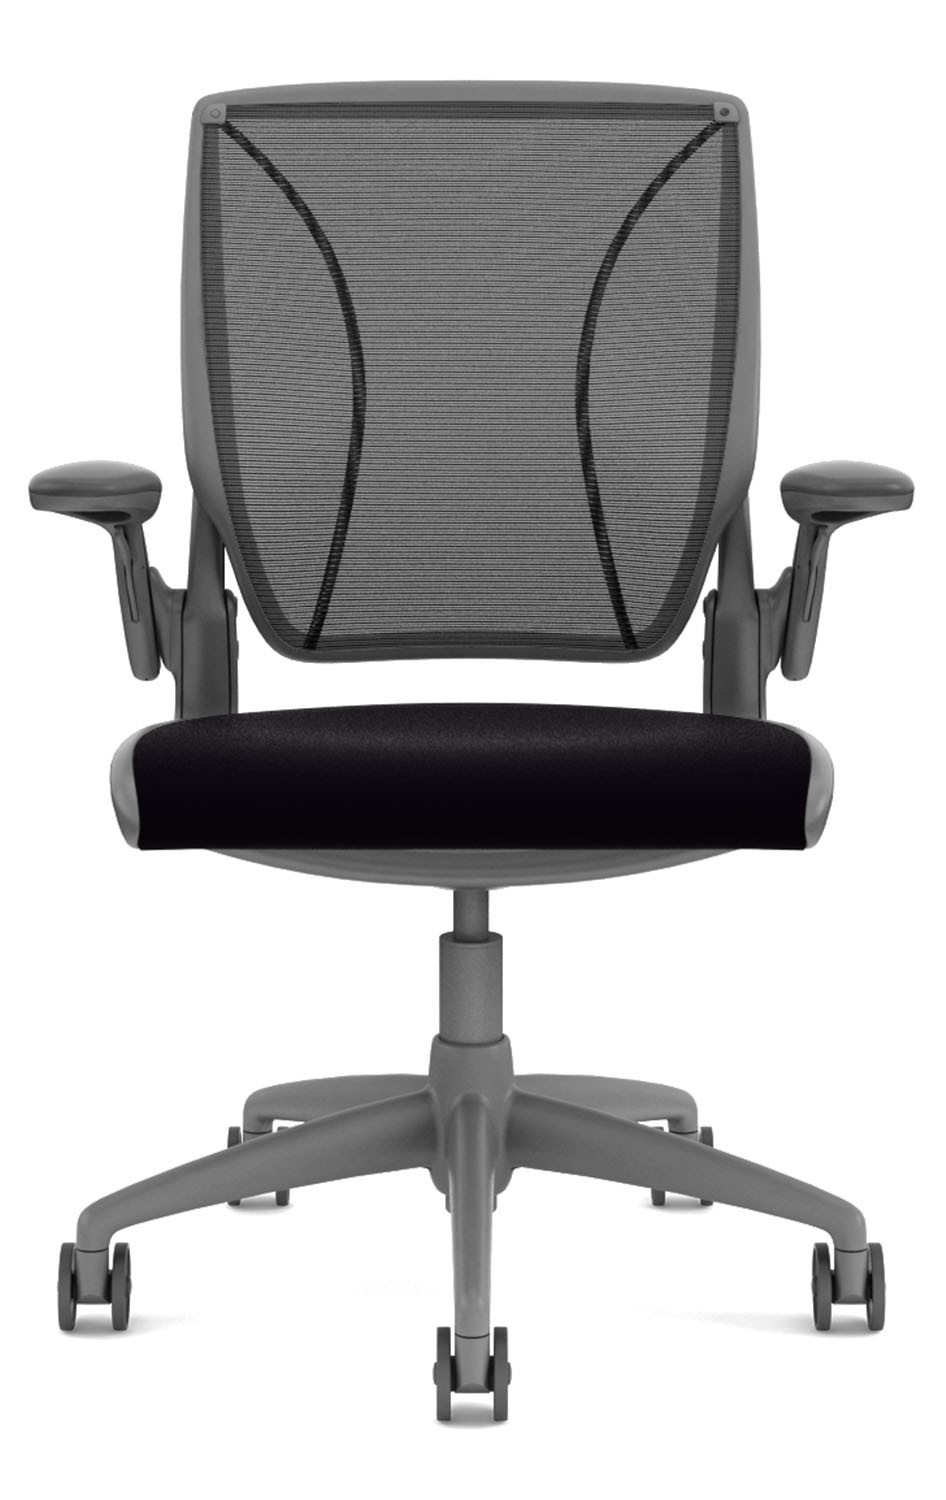 Head Rest for Office Chair | Humanscale Freedom Task | Humanscale Freedom Chair